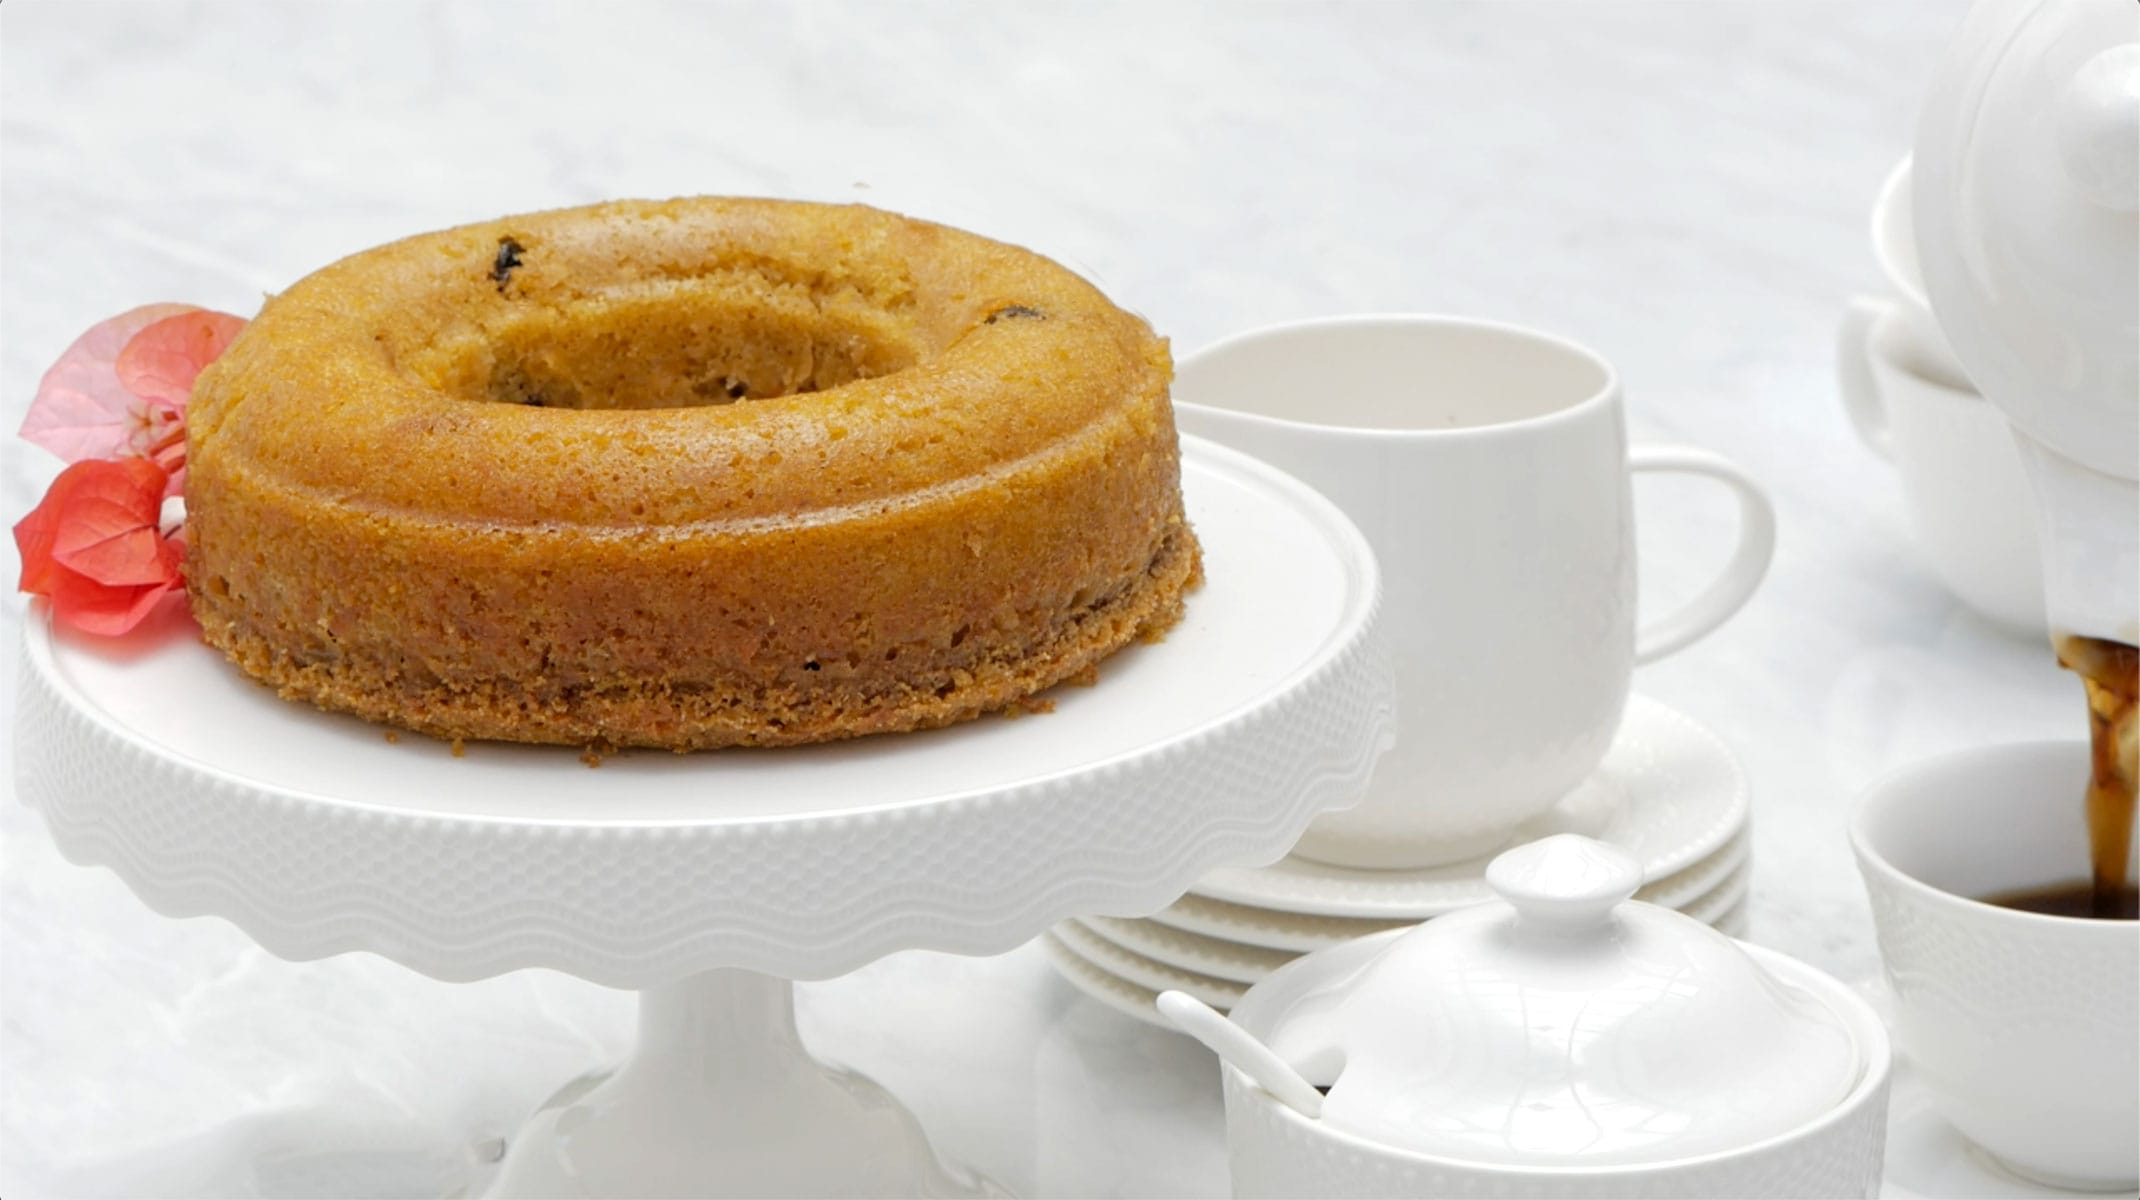 Serving coffee with cornmeal cake